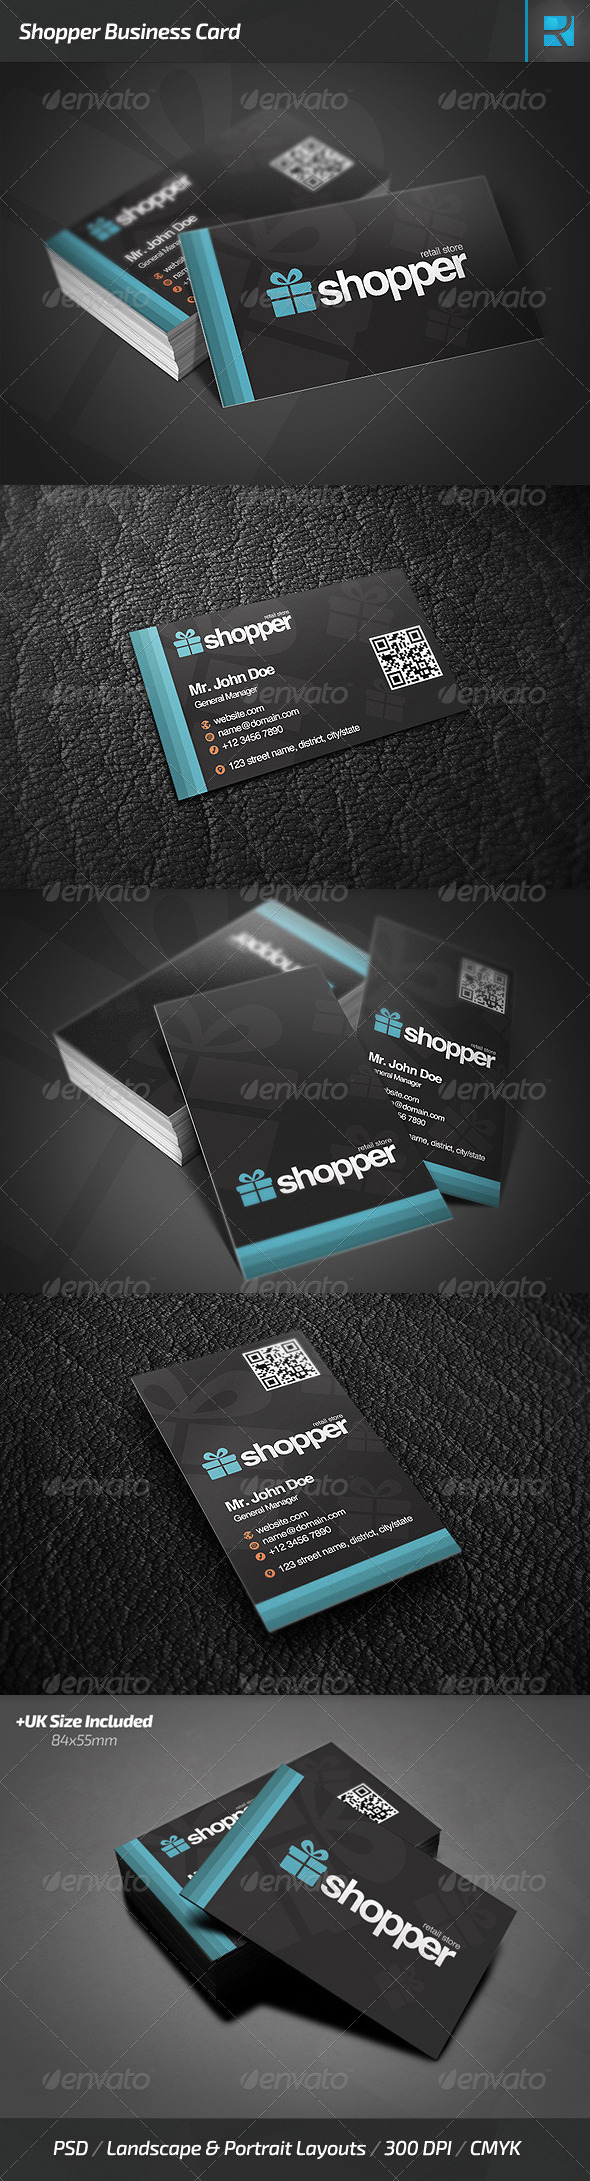 Shopper Business Card